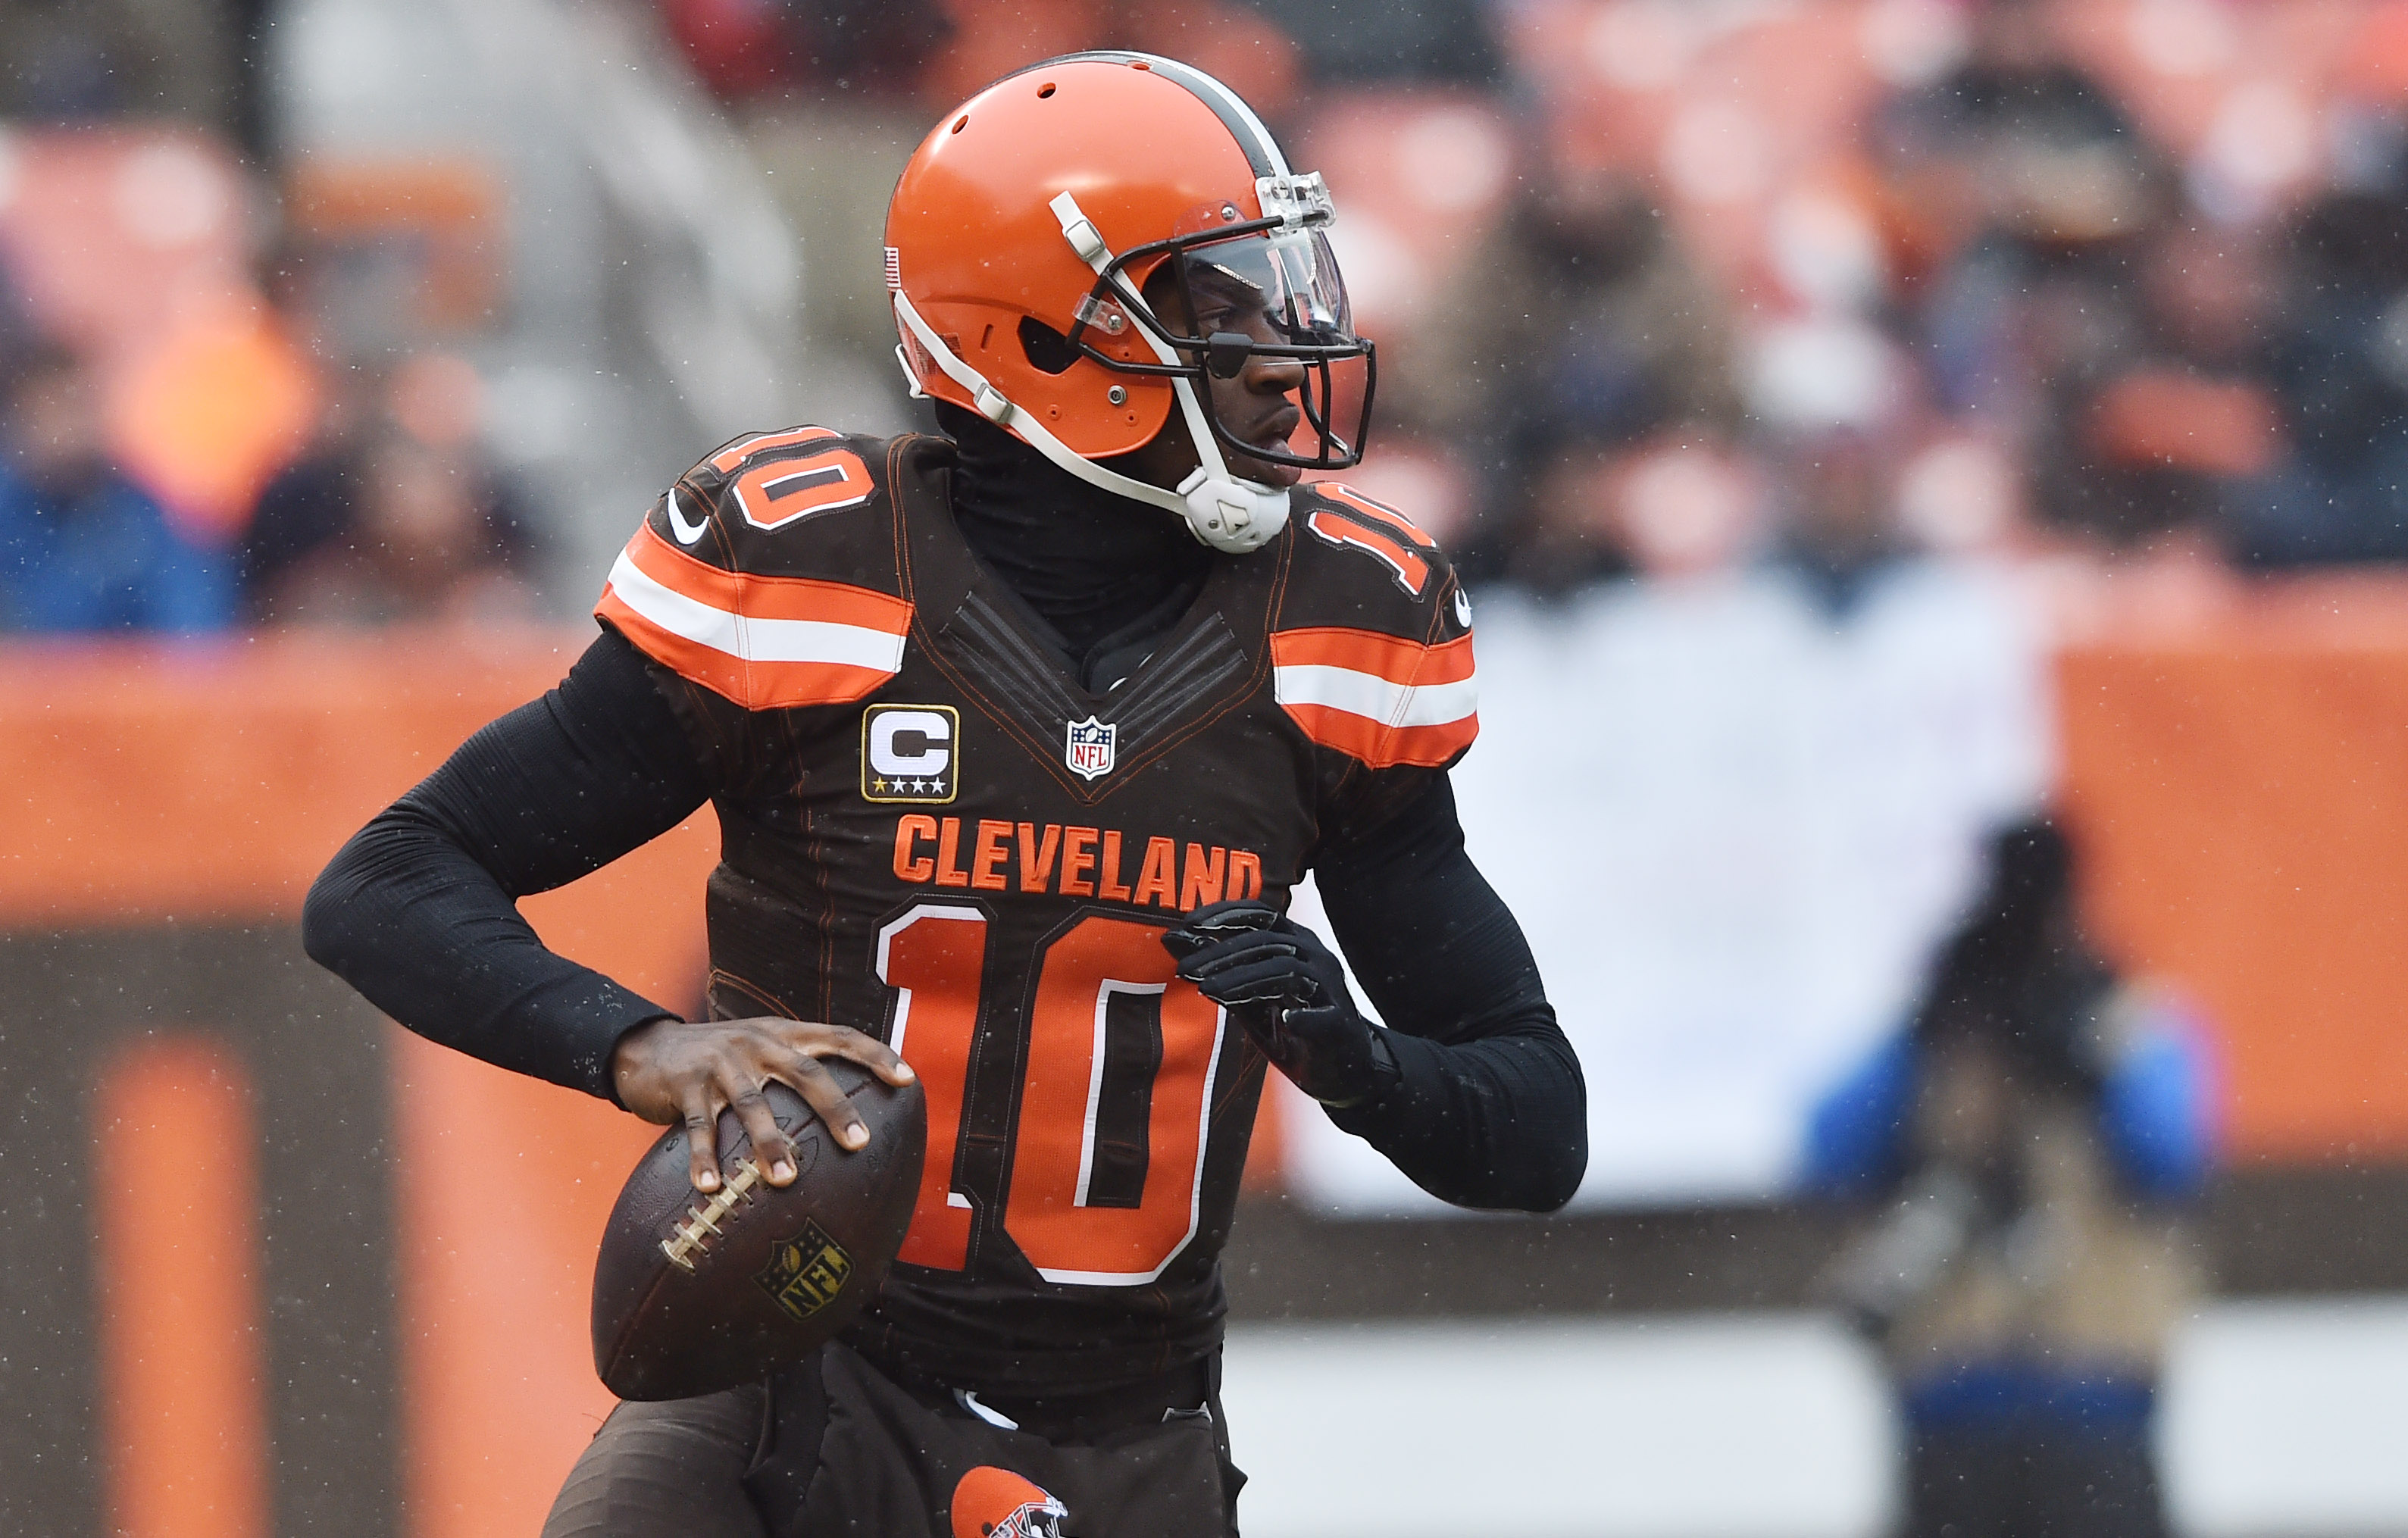 Hue Jackson: RG3 showed poise in return to Cleveland Browns | wkyc.com